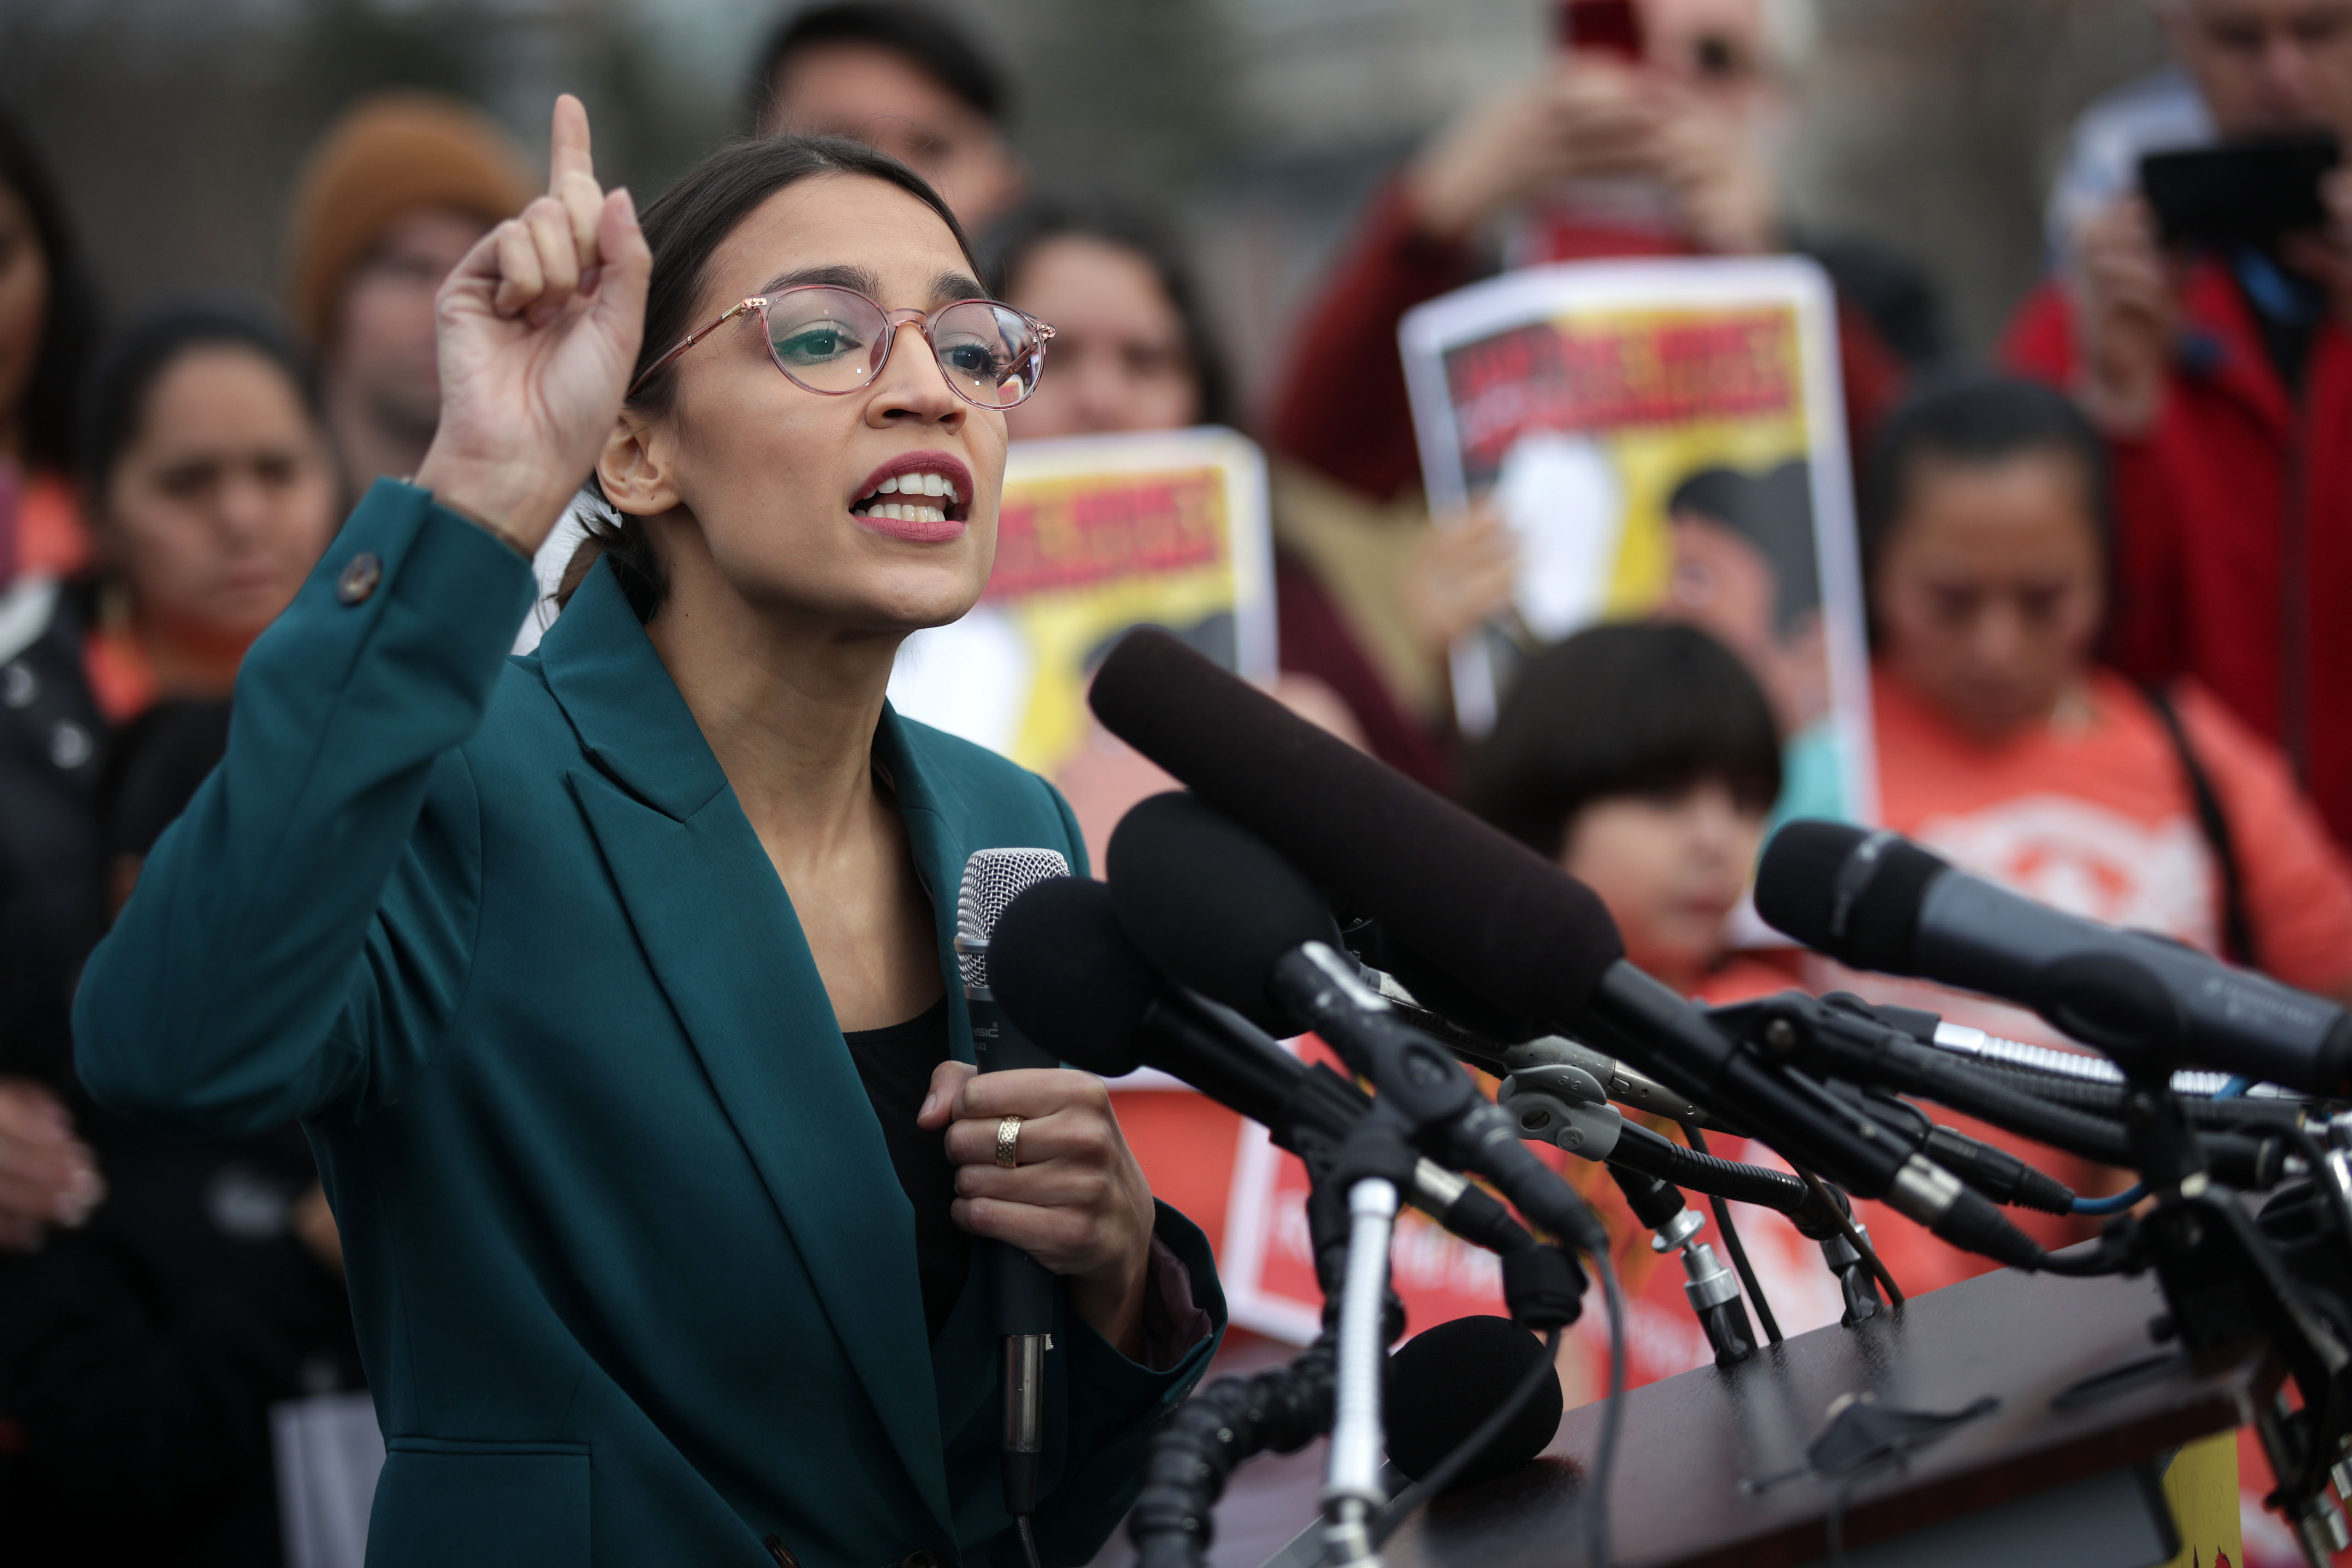 U.S. Rep. Alexandria Ocasio-Cortez (D-NY) speaks during a news conference at the East Front of the U.S. Capitol February 7, 2019, in Washington, DC. The freshmen congresswoman held a news conference to call on Congress 'to cut funding for President Trump's deportation force.' (Getty Images)